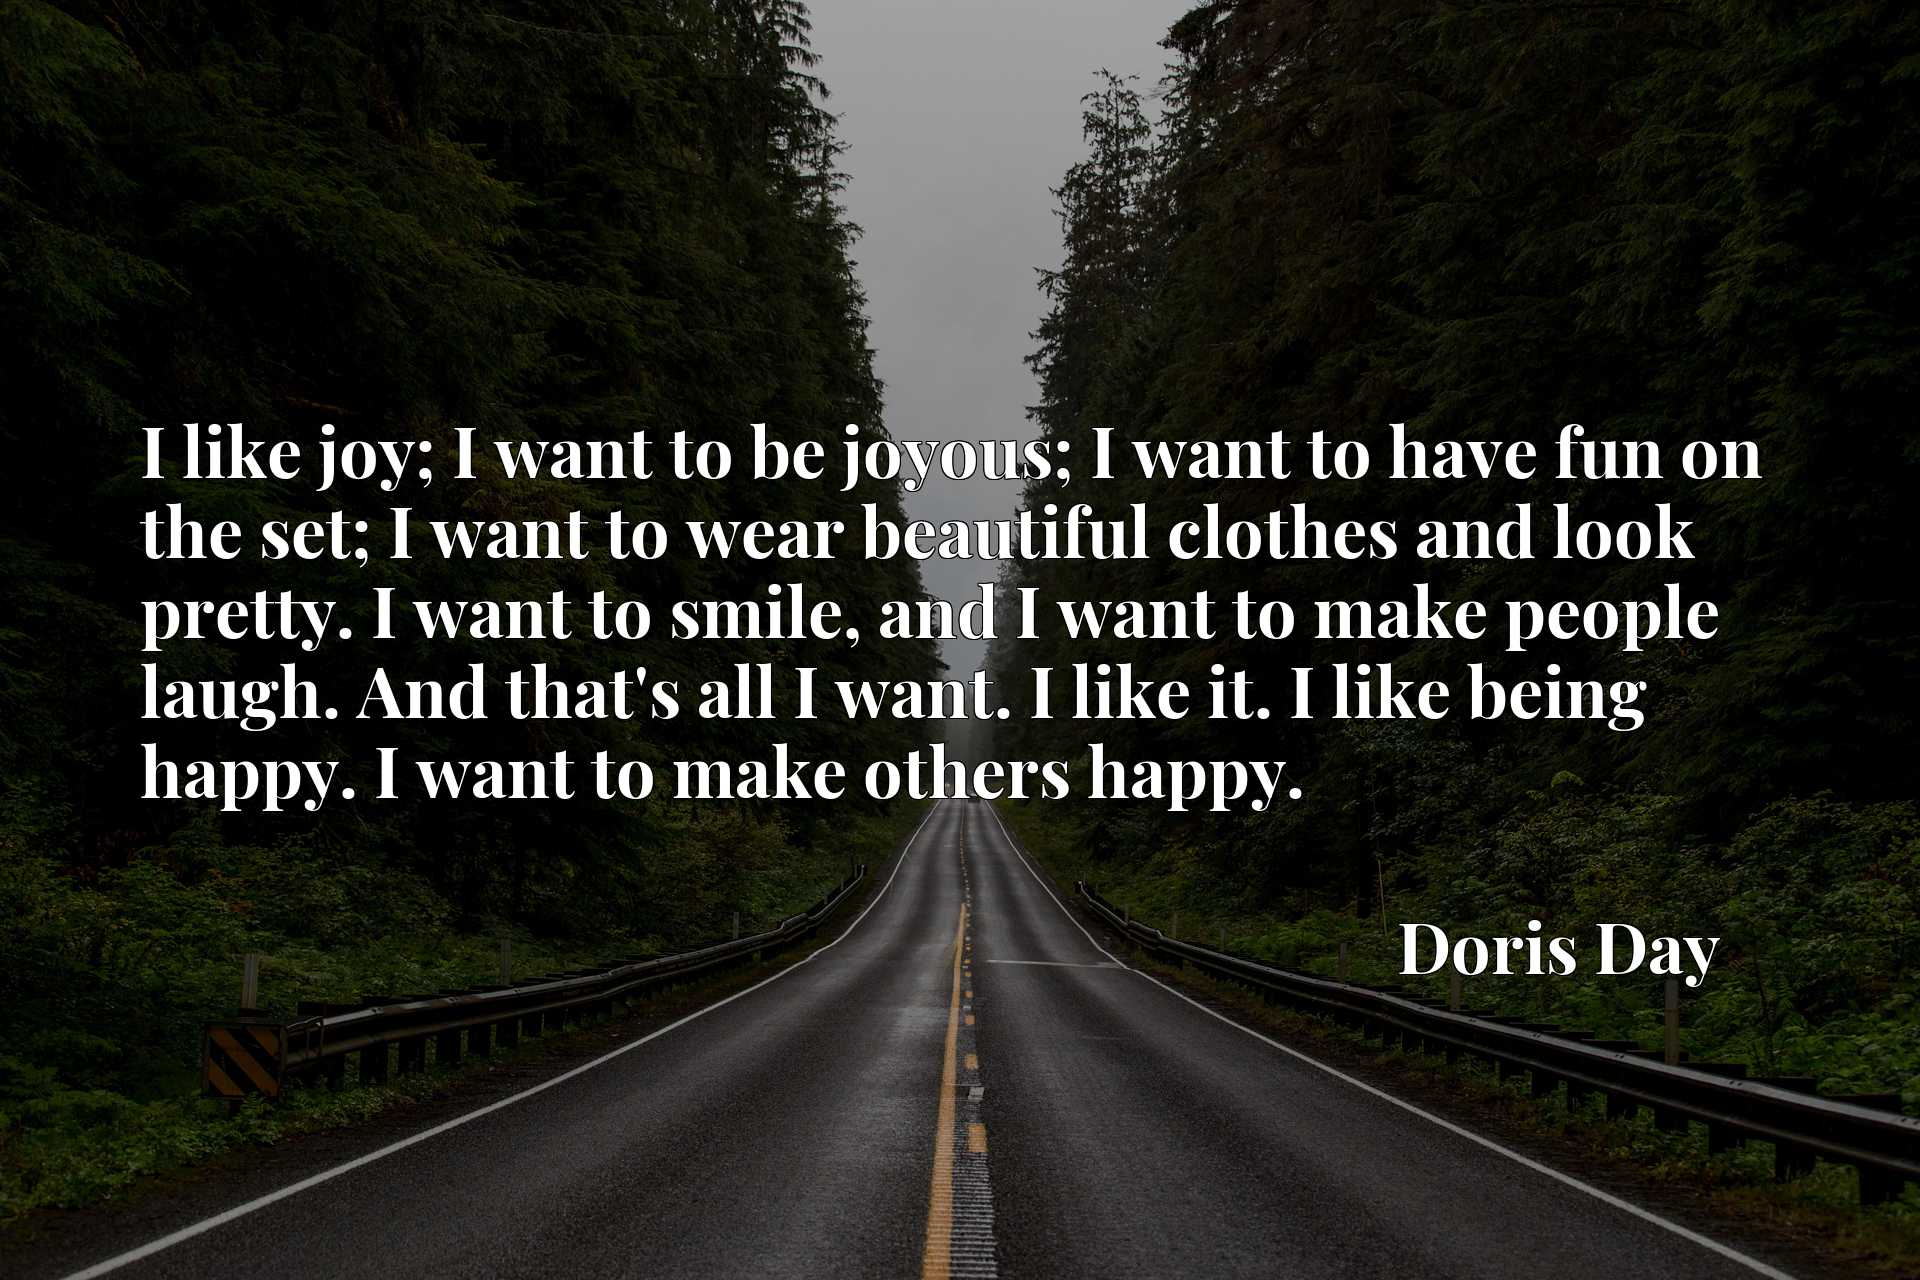 I like joy; I want to be joyous; I want to have fun on the set; I want to wear beautiful clothes and look pretty. I want to smile, and I want to make people laugh. And that's all I want. I like it. I like being happy. I want to make others happy.